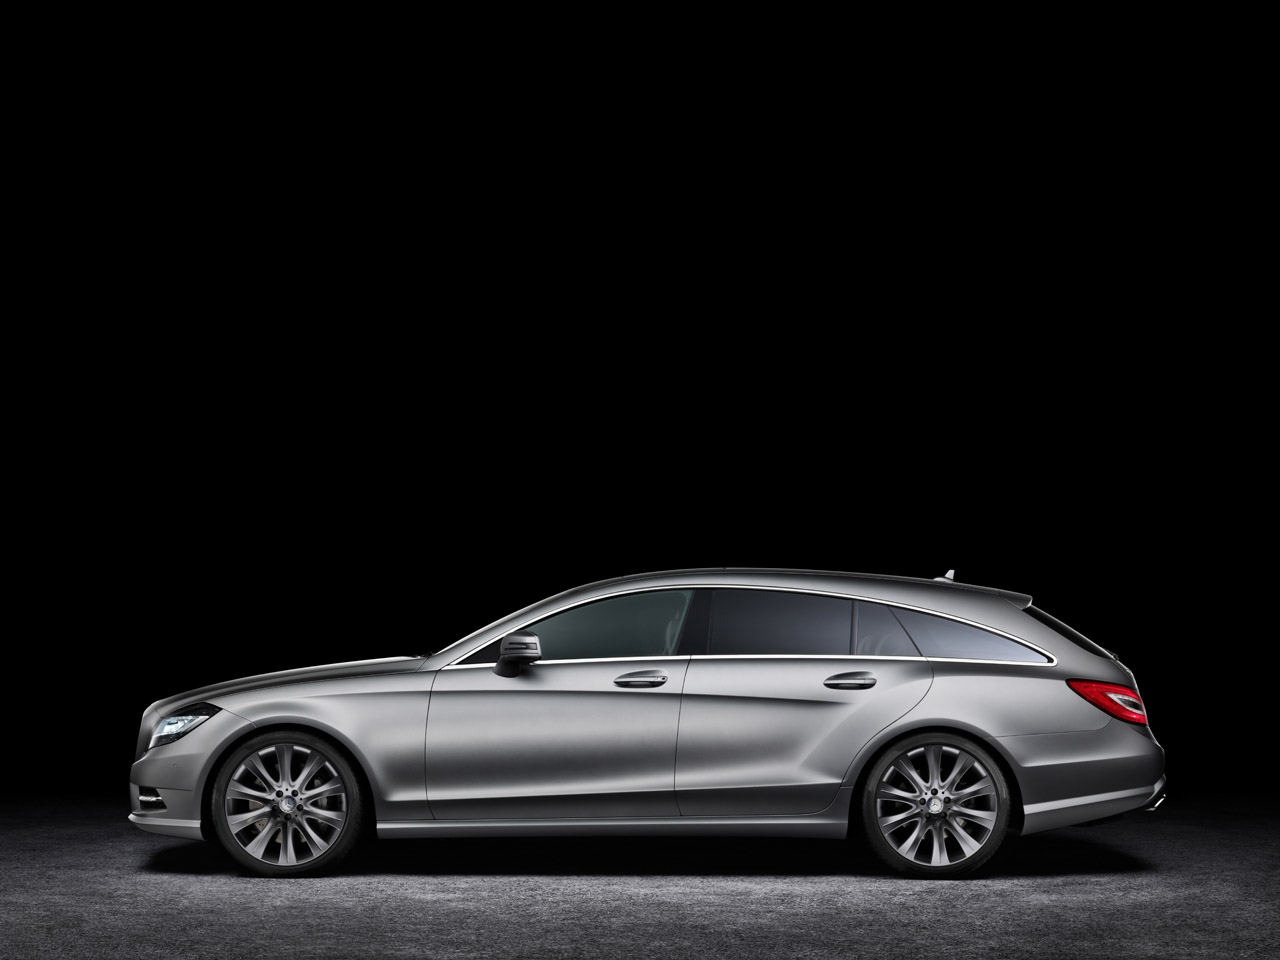 Mercedes-Benz CLA Shooting Brake image #11